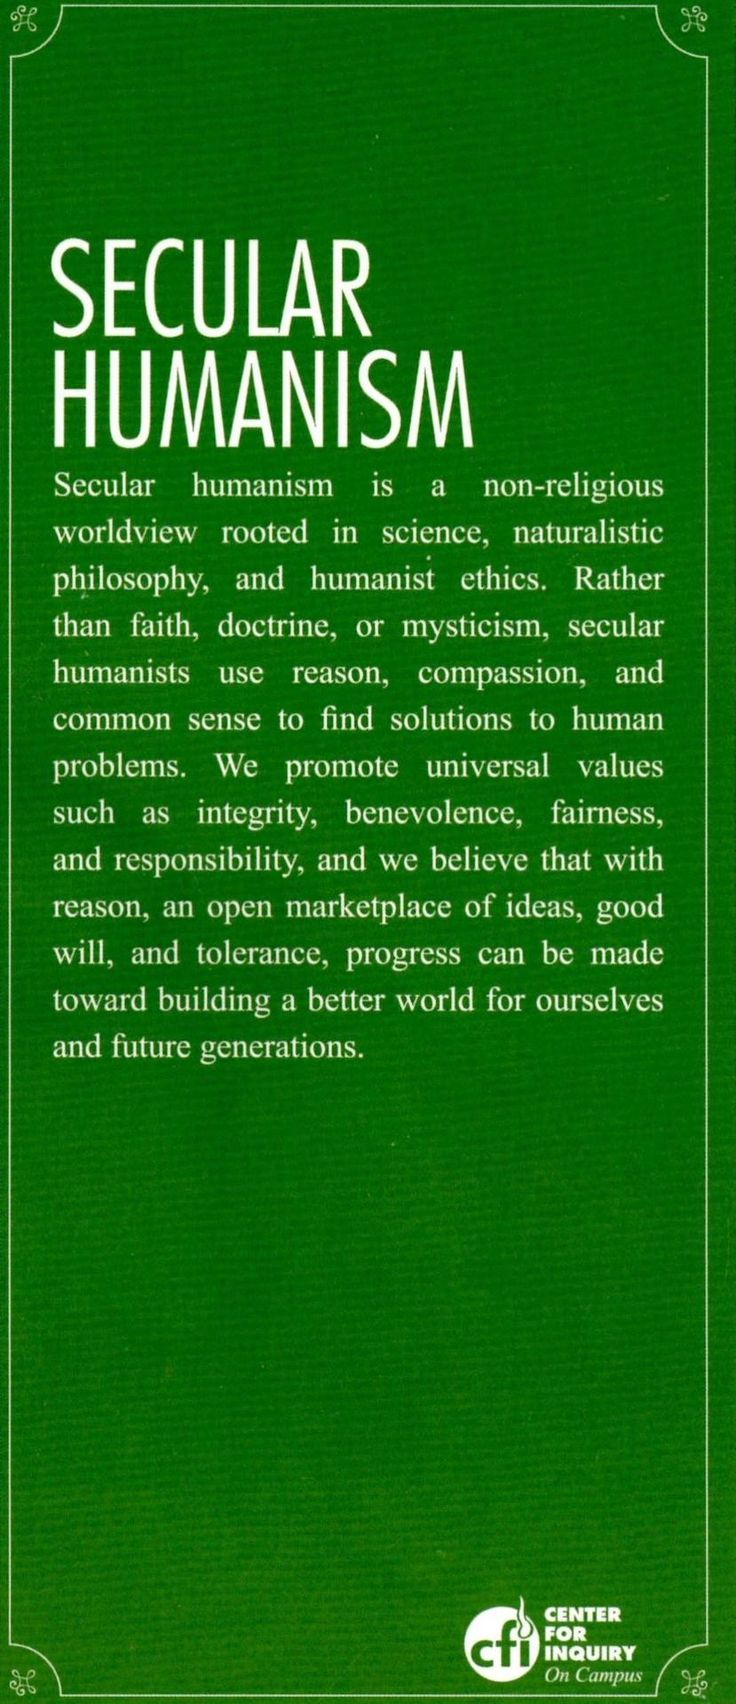 There is also Gaianism and Materialistic Pantheism, Secular Naturalism, and non-denominational or non-secular Humanism (which allows anyone from any spirituality to be a part of it)... These all share a pretty similar outlook to the one described above.